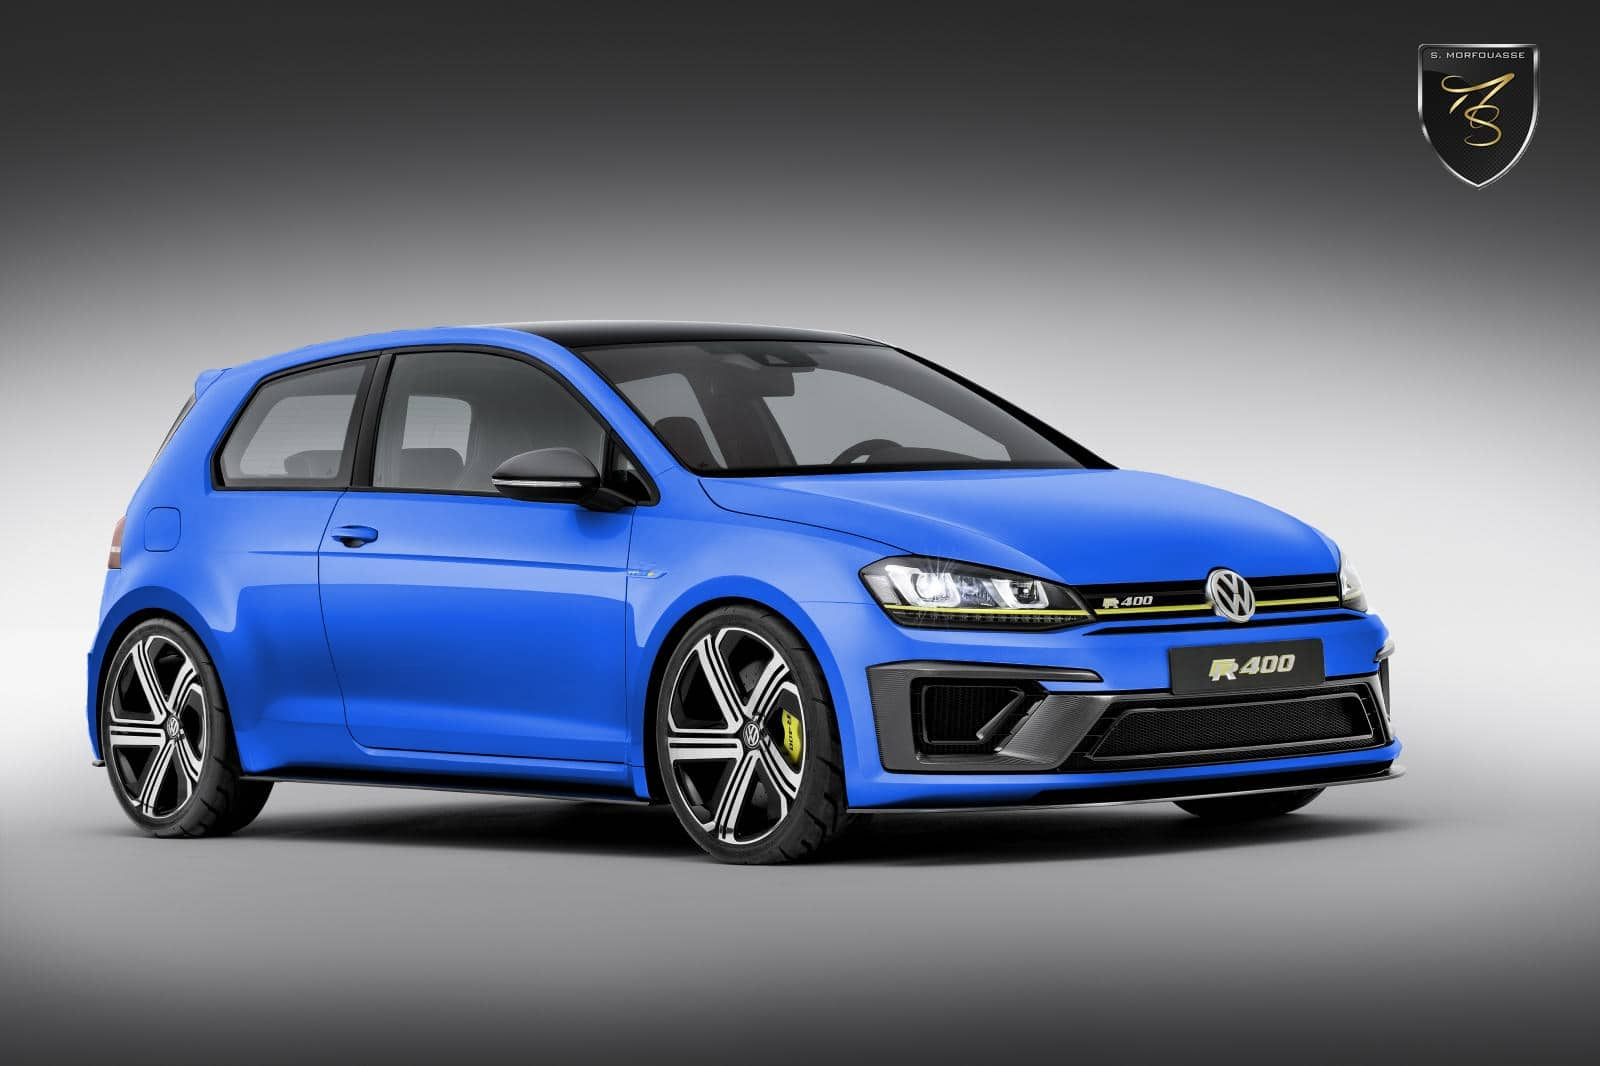 2016 Vw Golf R Usa Price Release Date Price And Specs